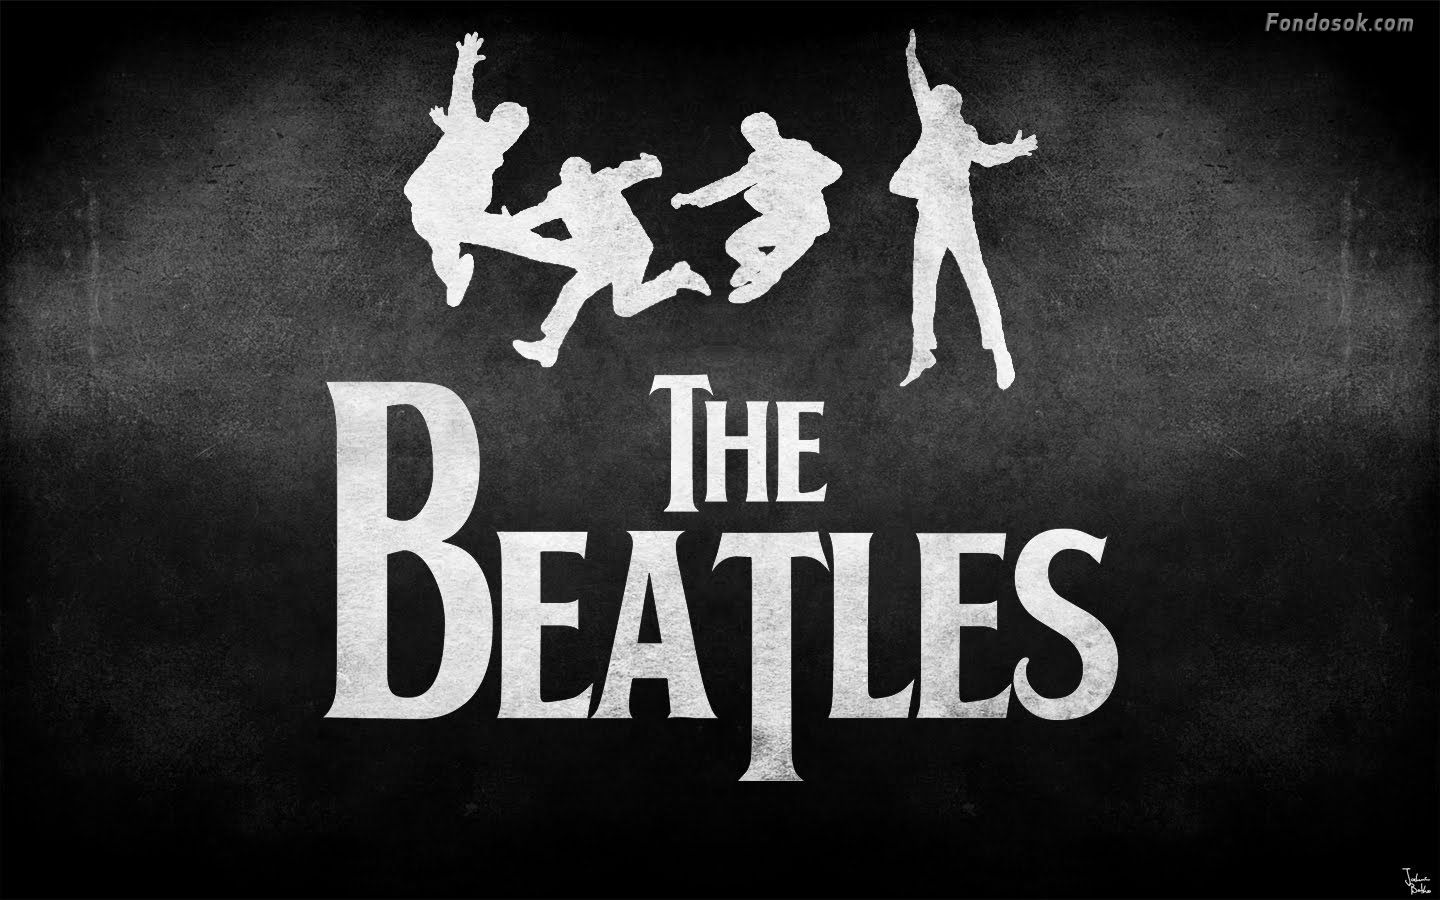 The beatles running hd desktop wallpaper high definition hd the beatles running hd desktop wallpaper high definition voltagebd Choice Image